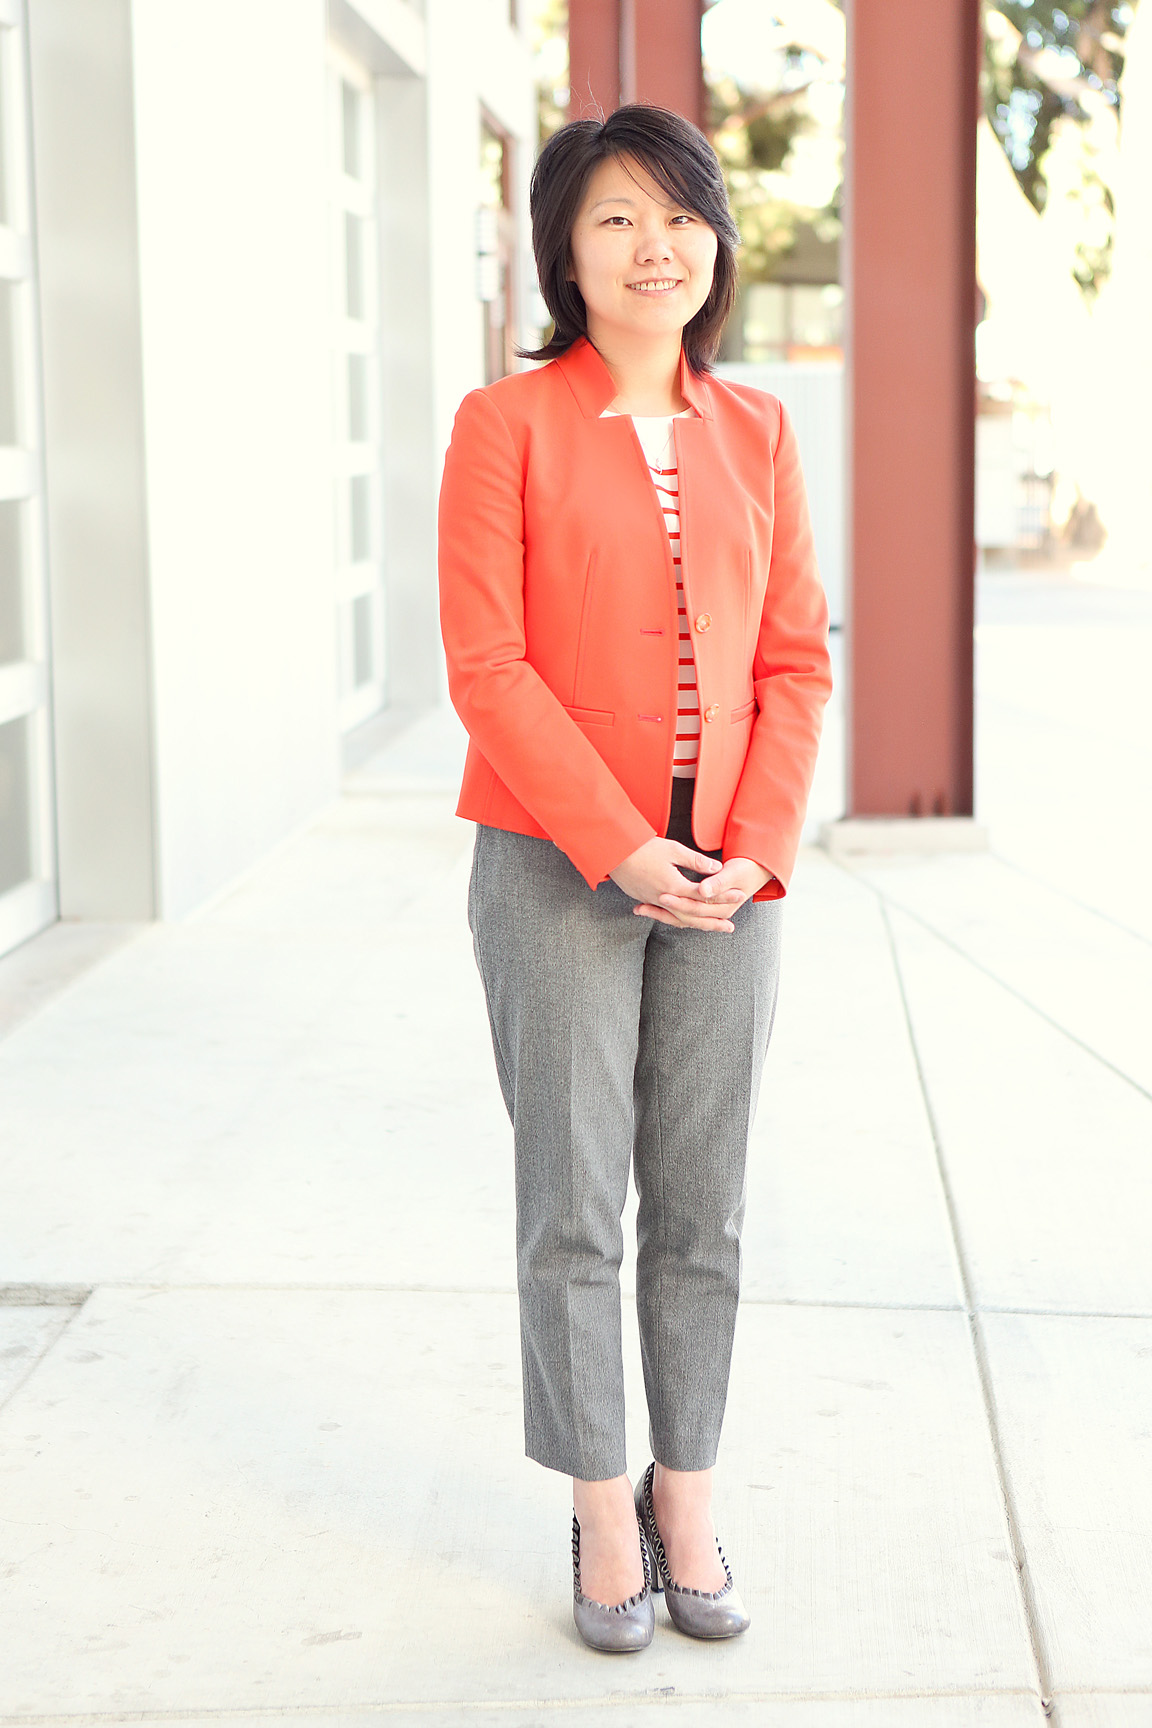 PP&Co | Silicon Valley Accounting FirmJie Zhu, CPA